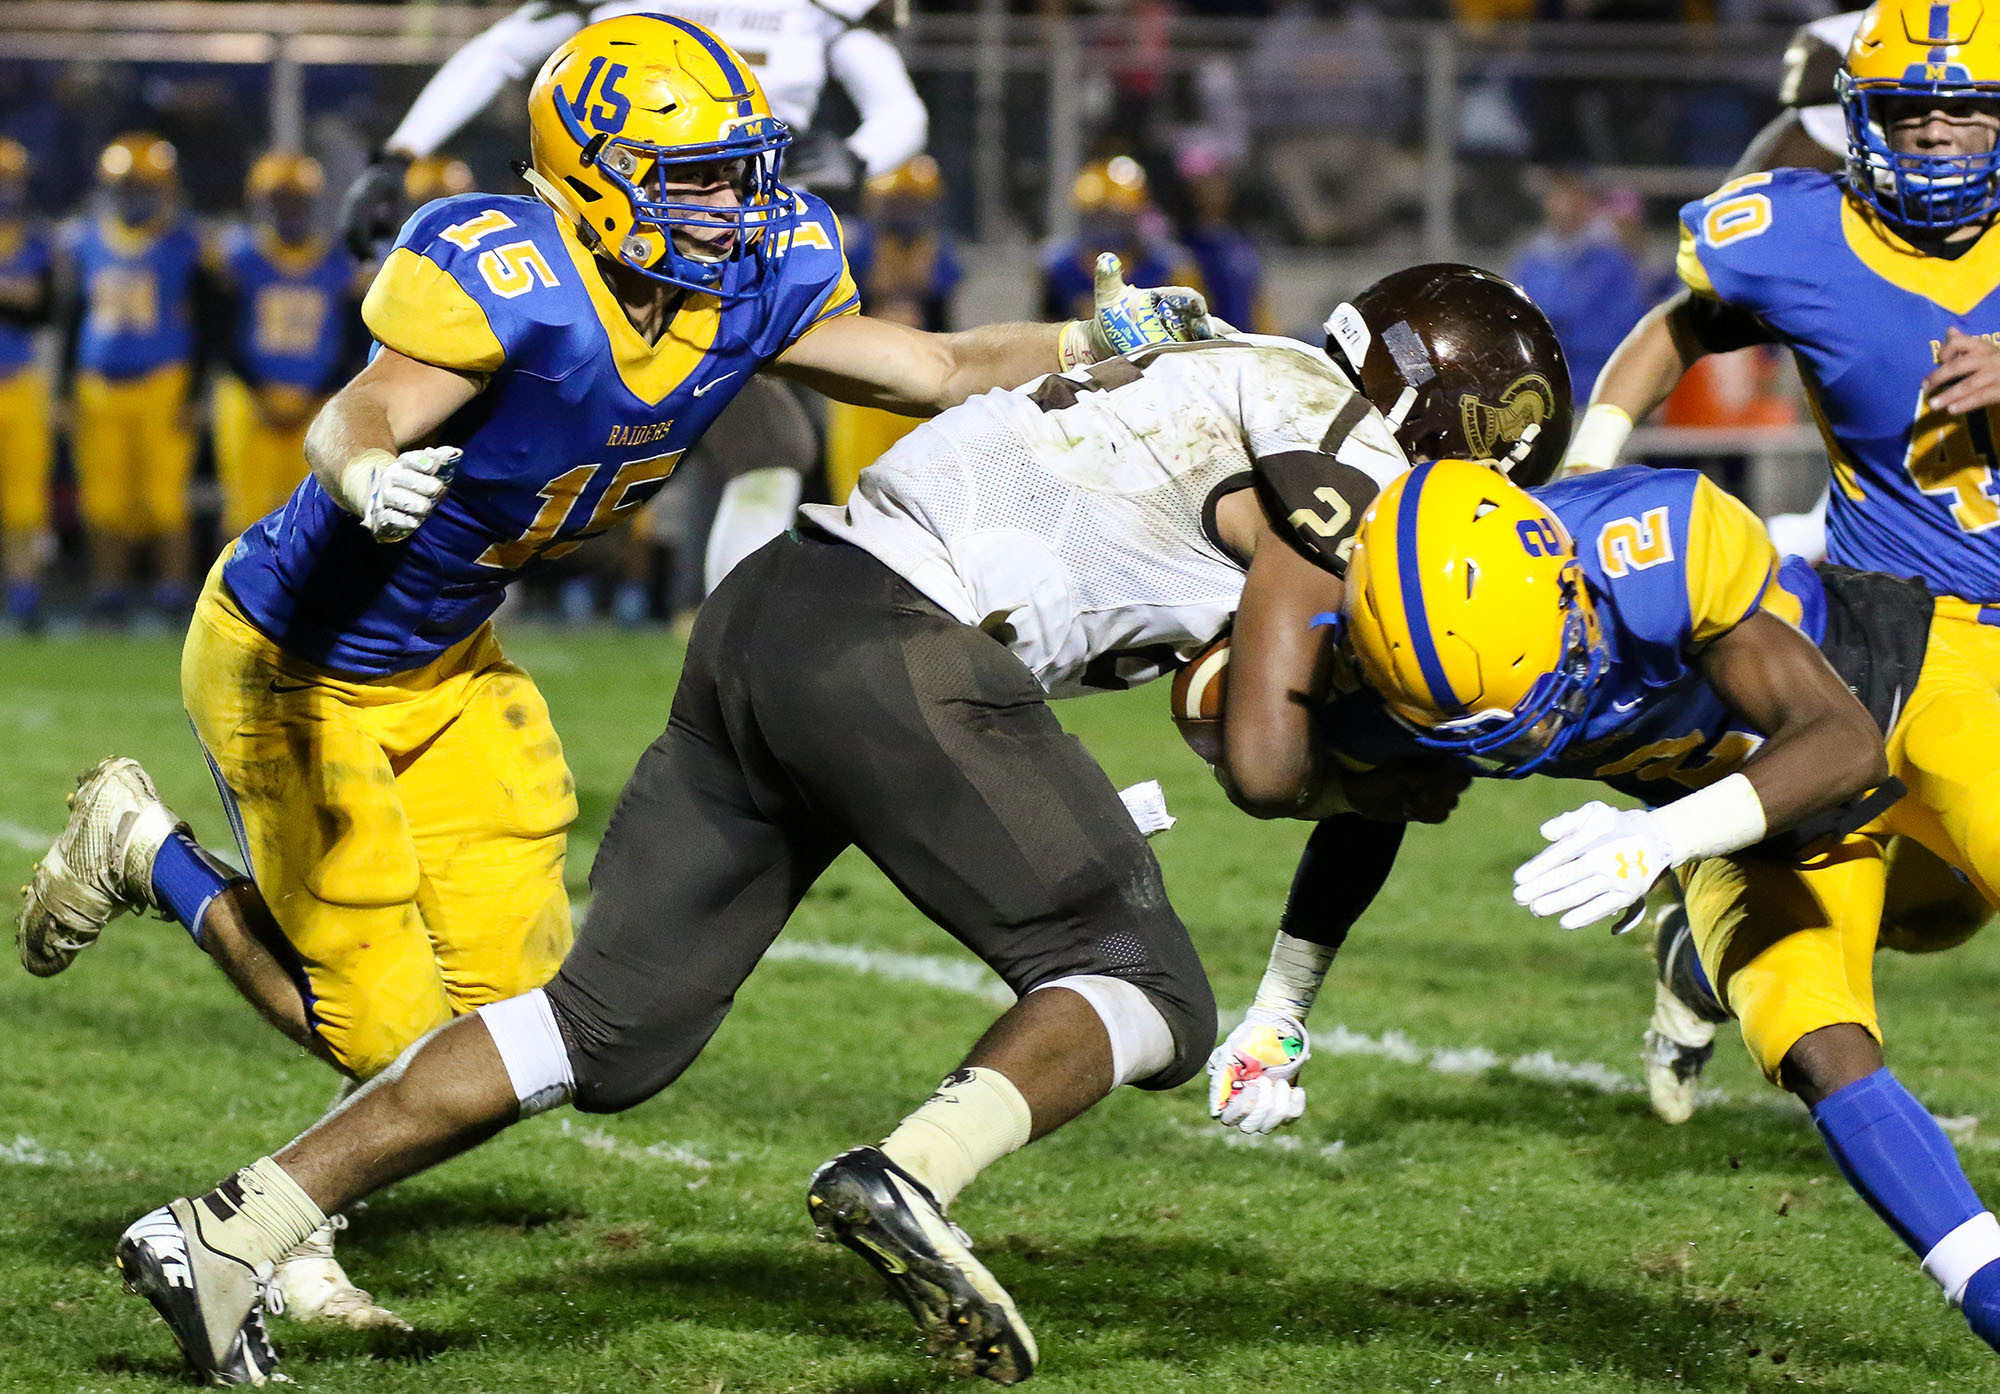 Blue Raiders Blake Jacoby and Tyreer Mills take down Milton Hershey ball carrier Naeem Cross.